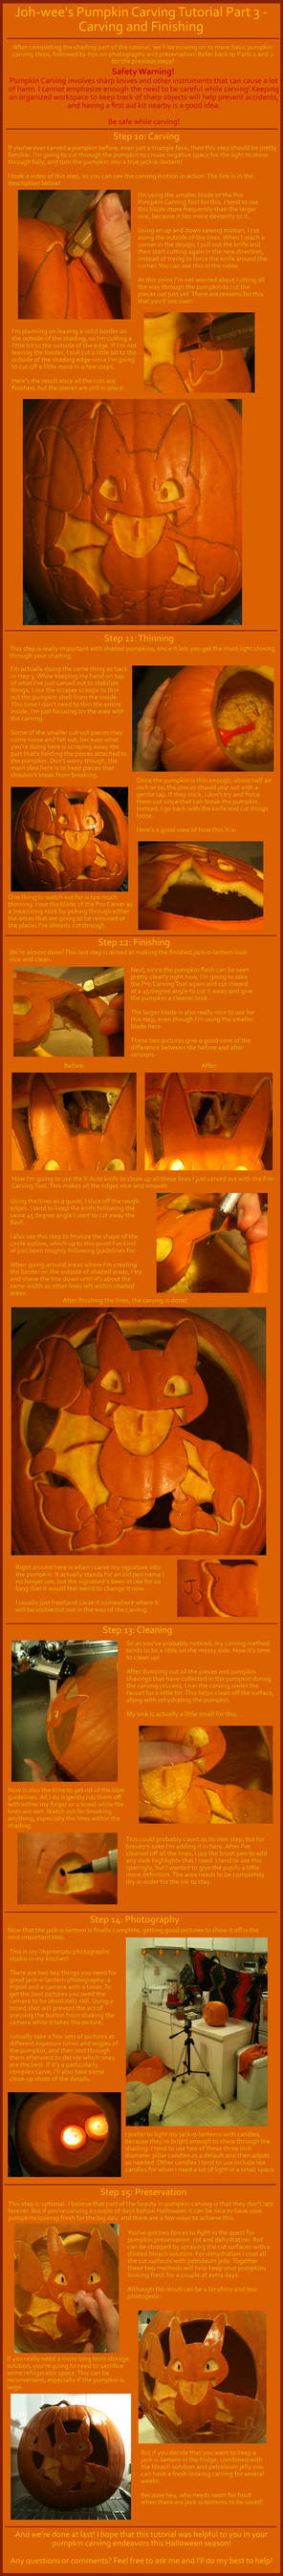 Pumpkin Carving Tutorial - Part 3